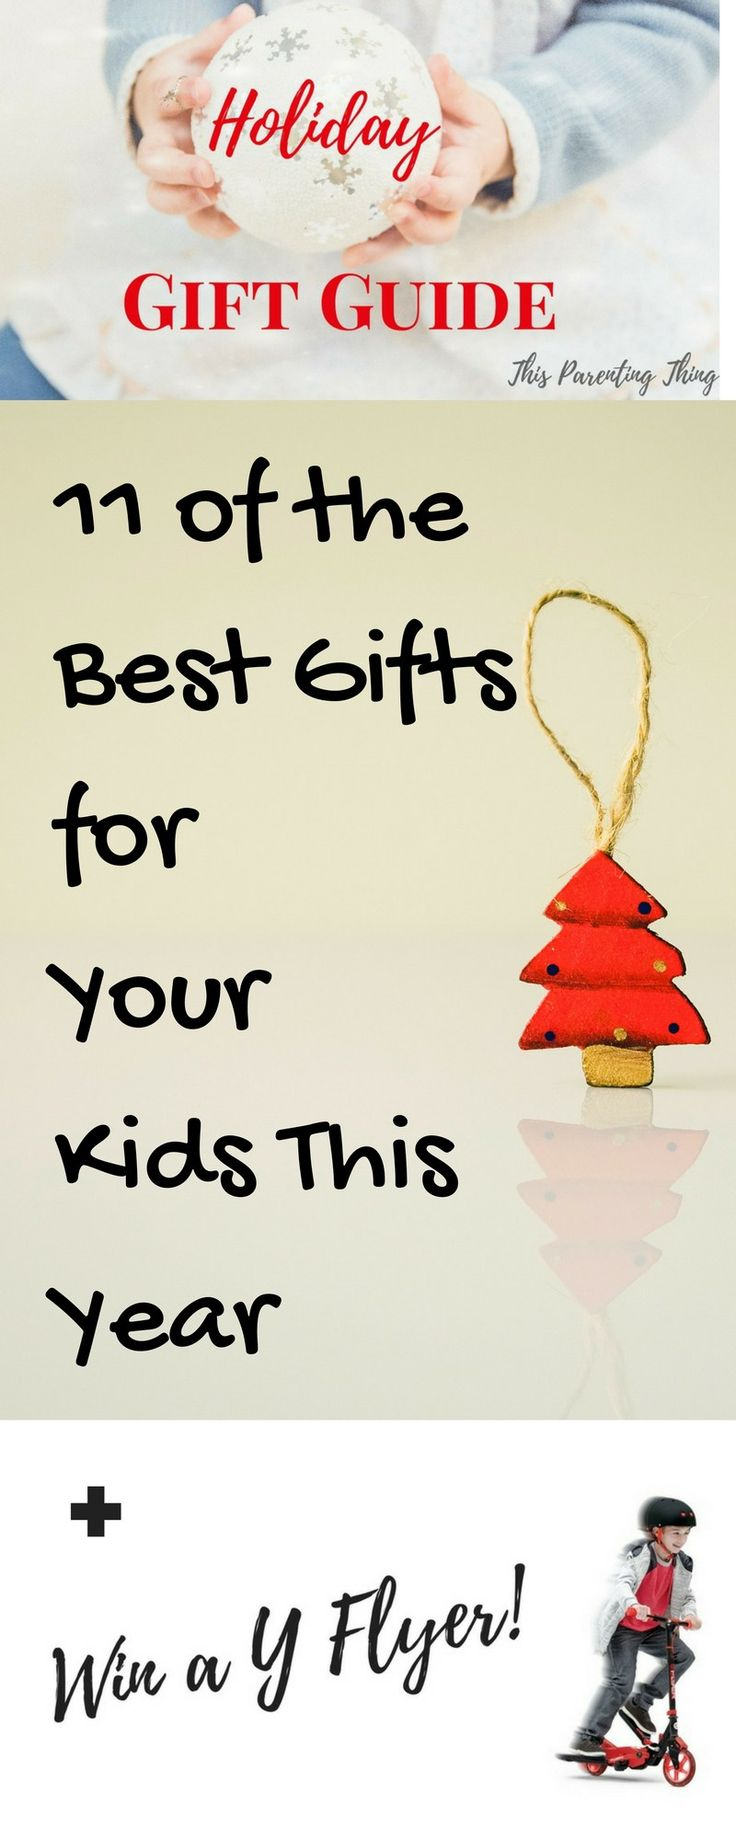 Your Holiday Gift Guide 2016  This Parenting Thing